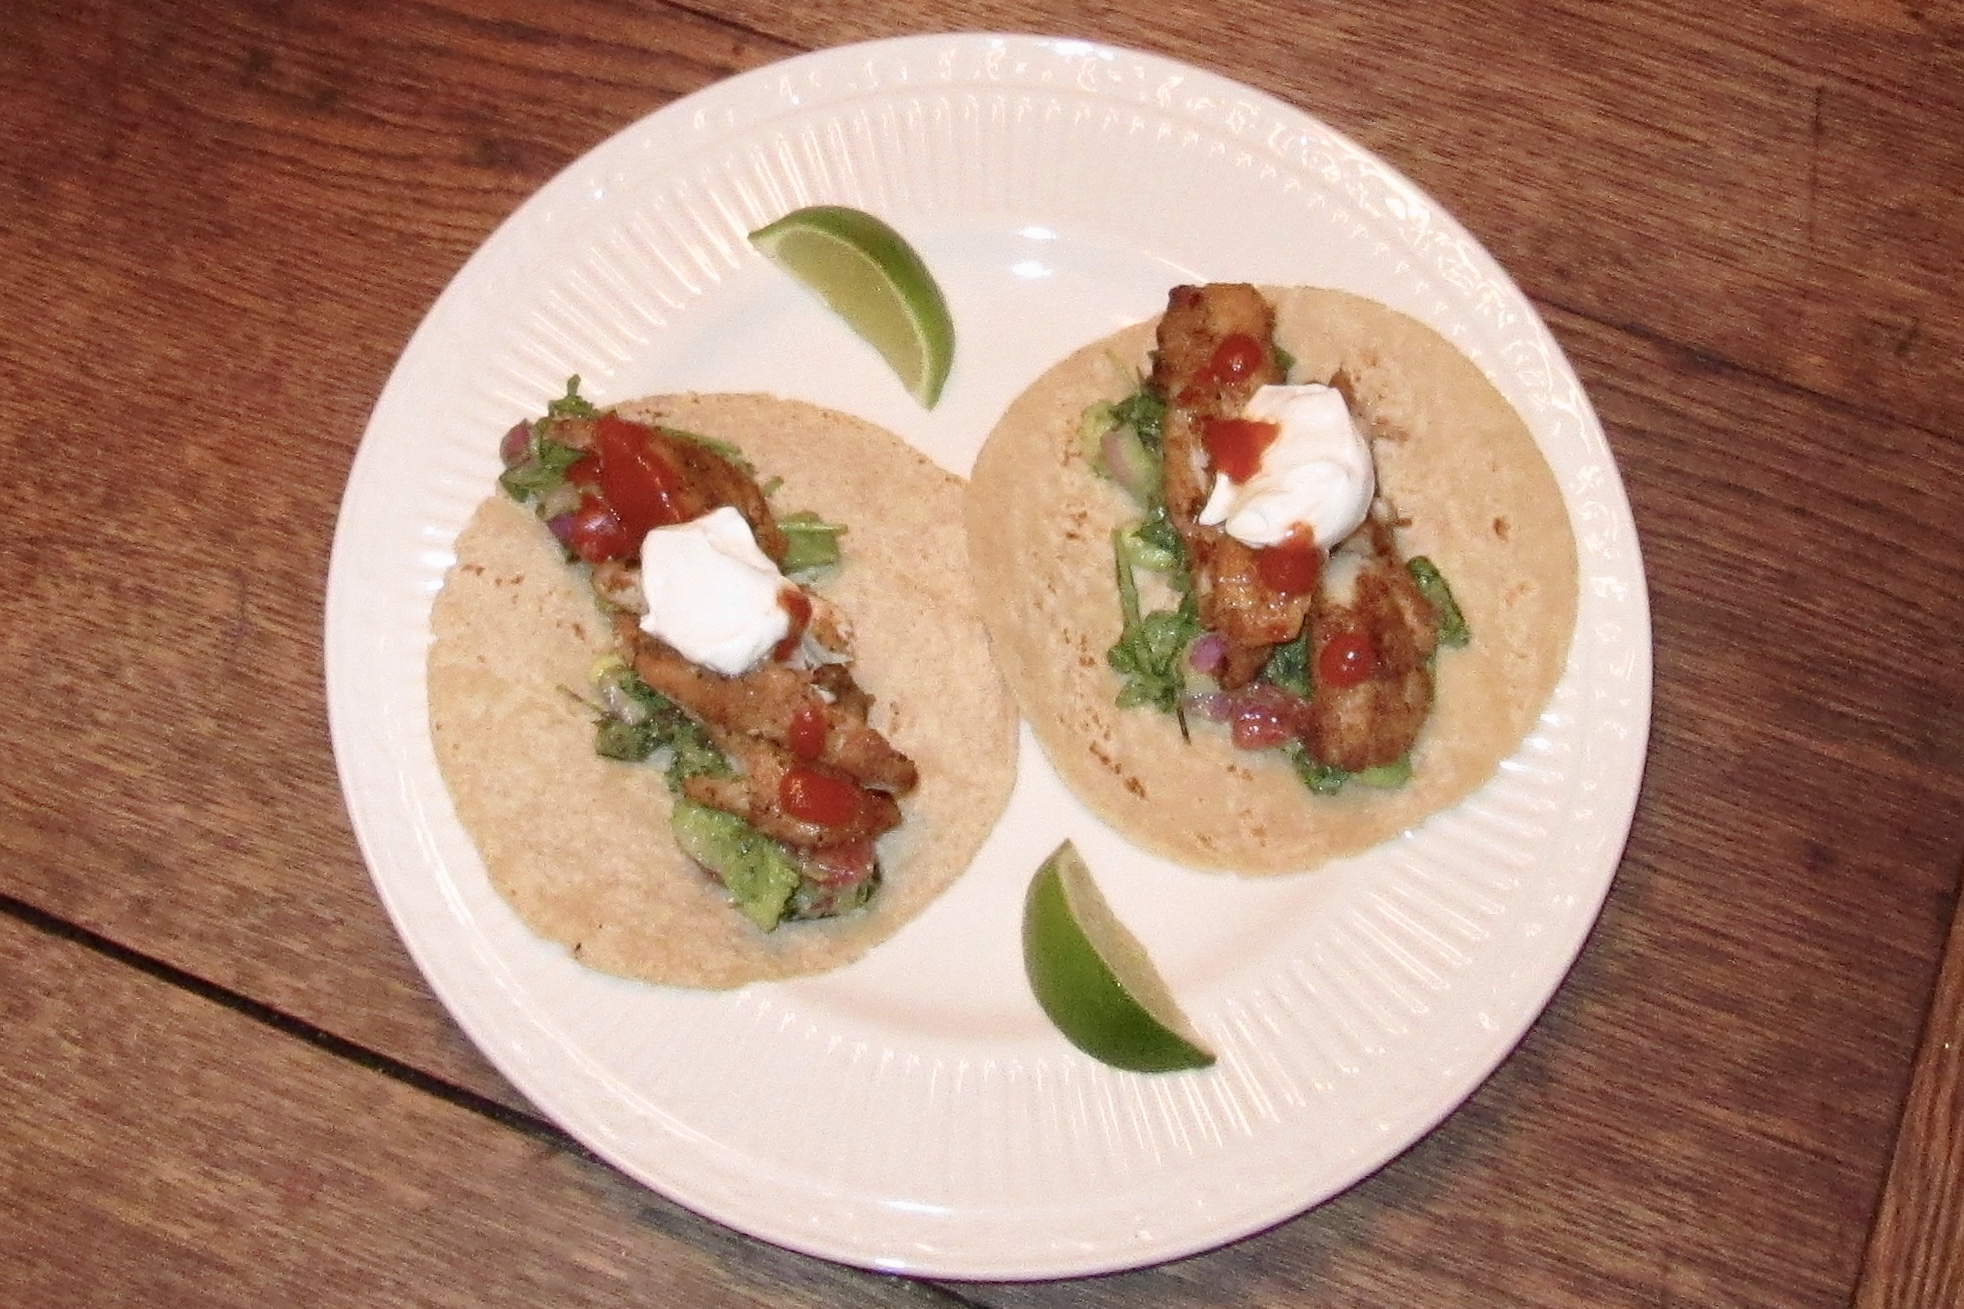 Trout Tacos with Avocado Shisito Salad